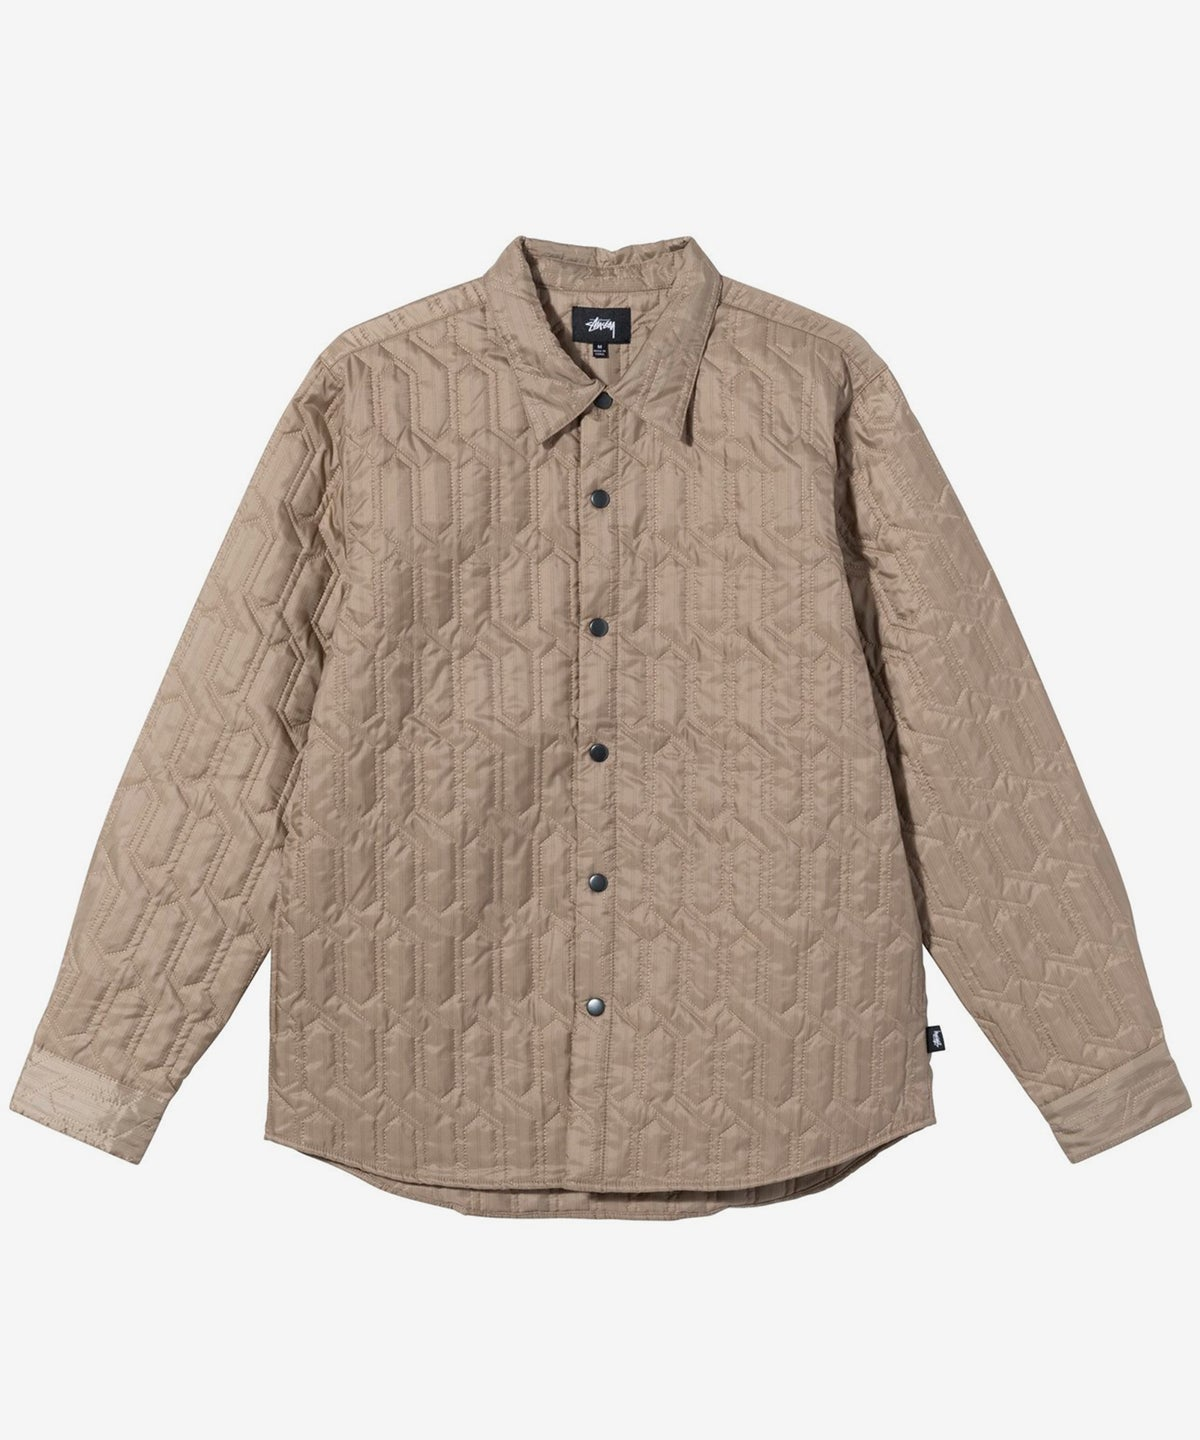 Image of STUSSY_QUILTED INSULATED SHIRT :::BEIGE:::